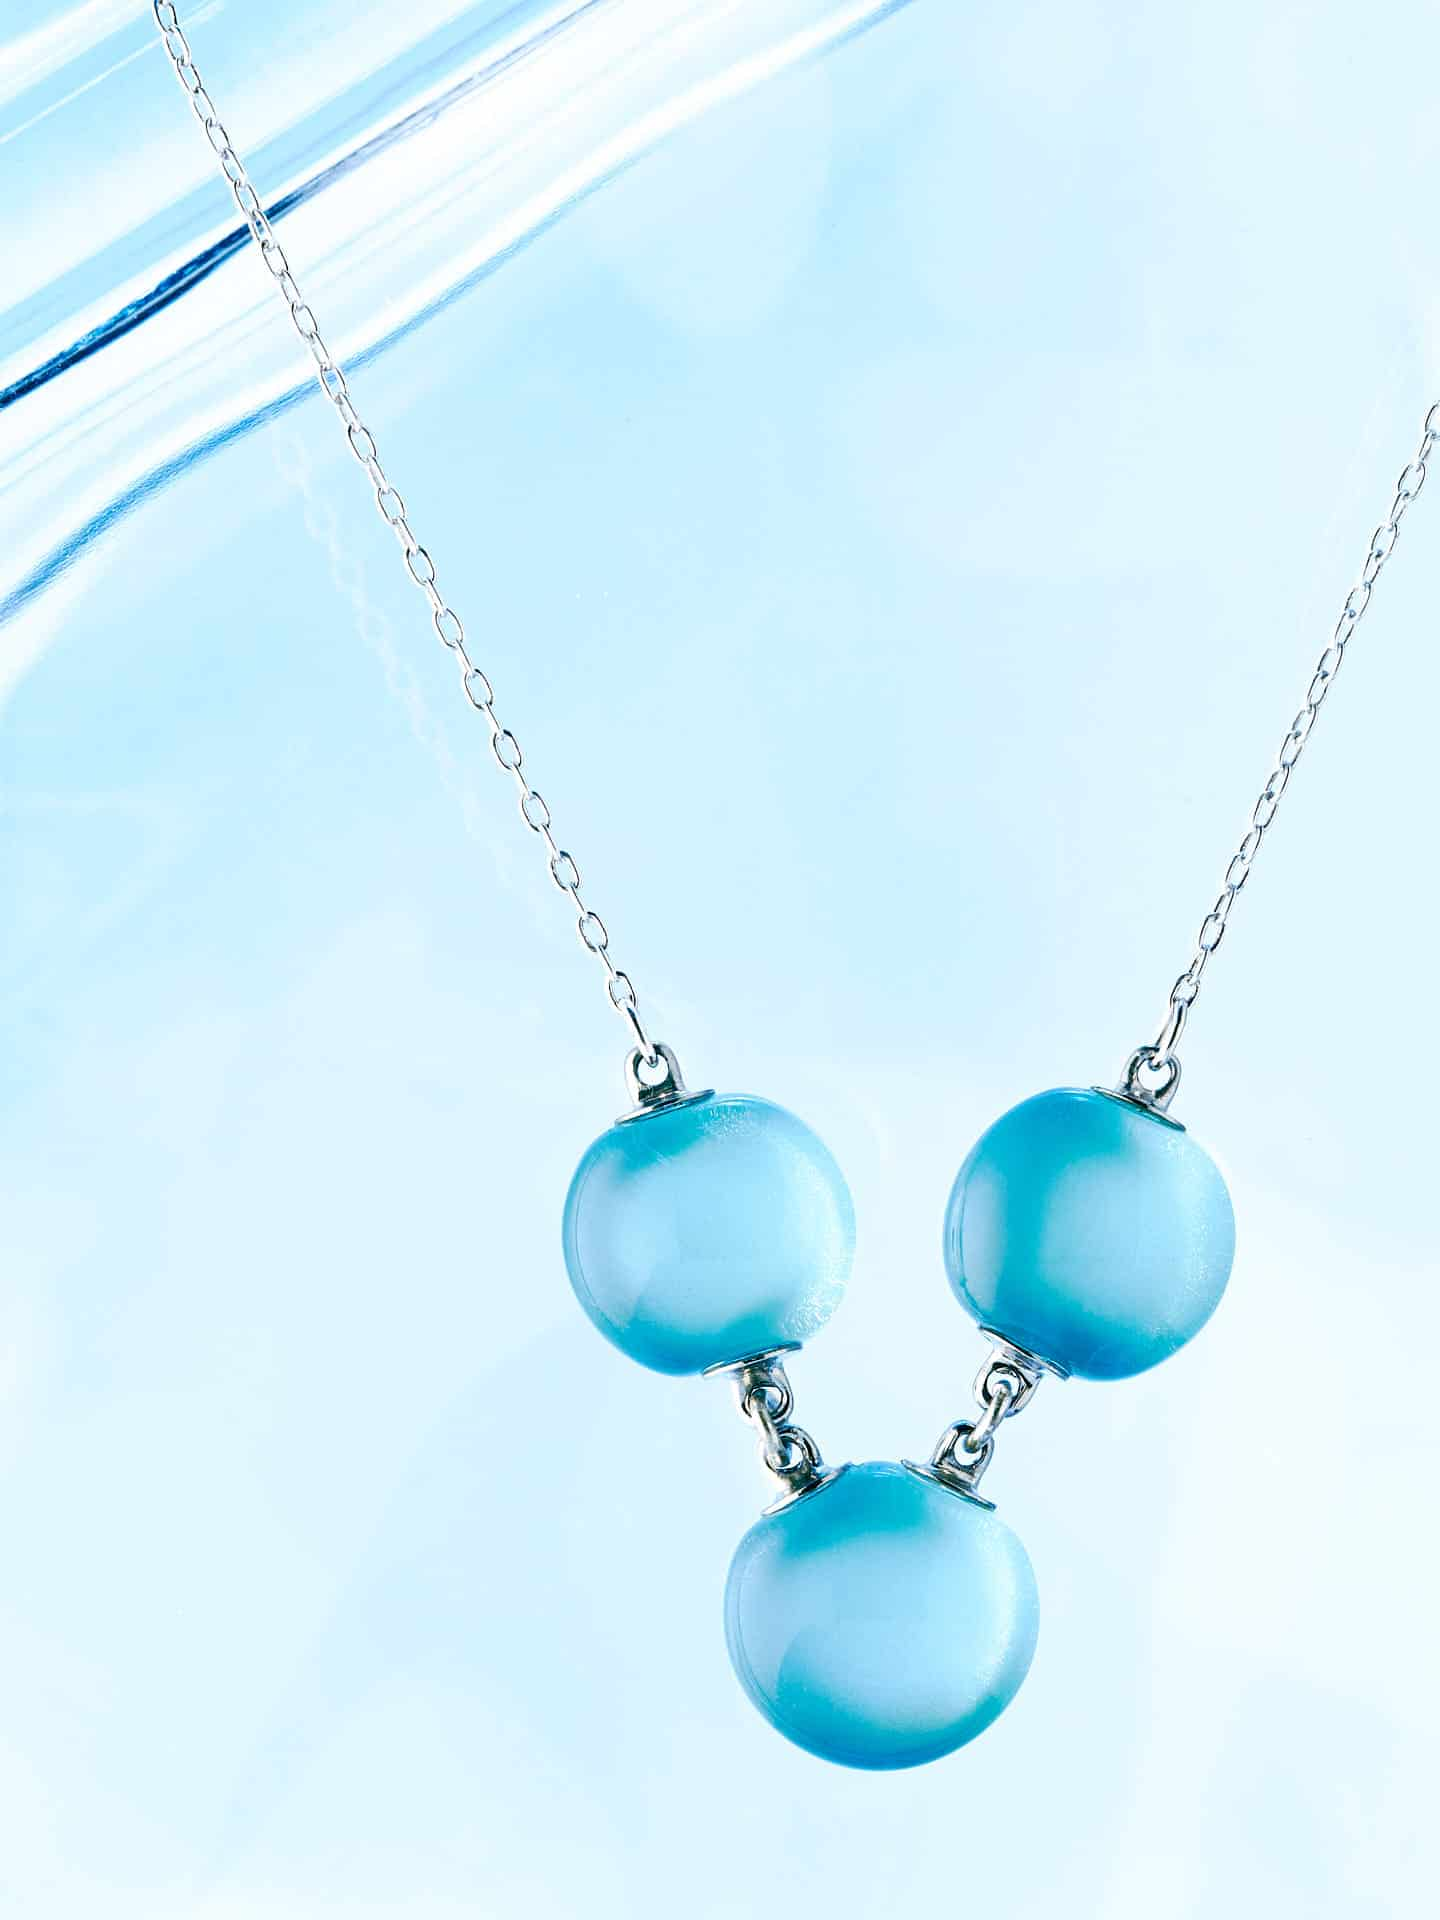 Blue Glass necklace by Perfecto Glass.